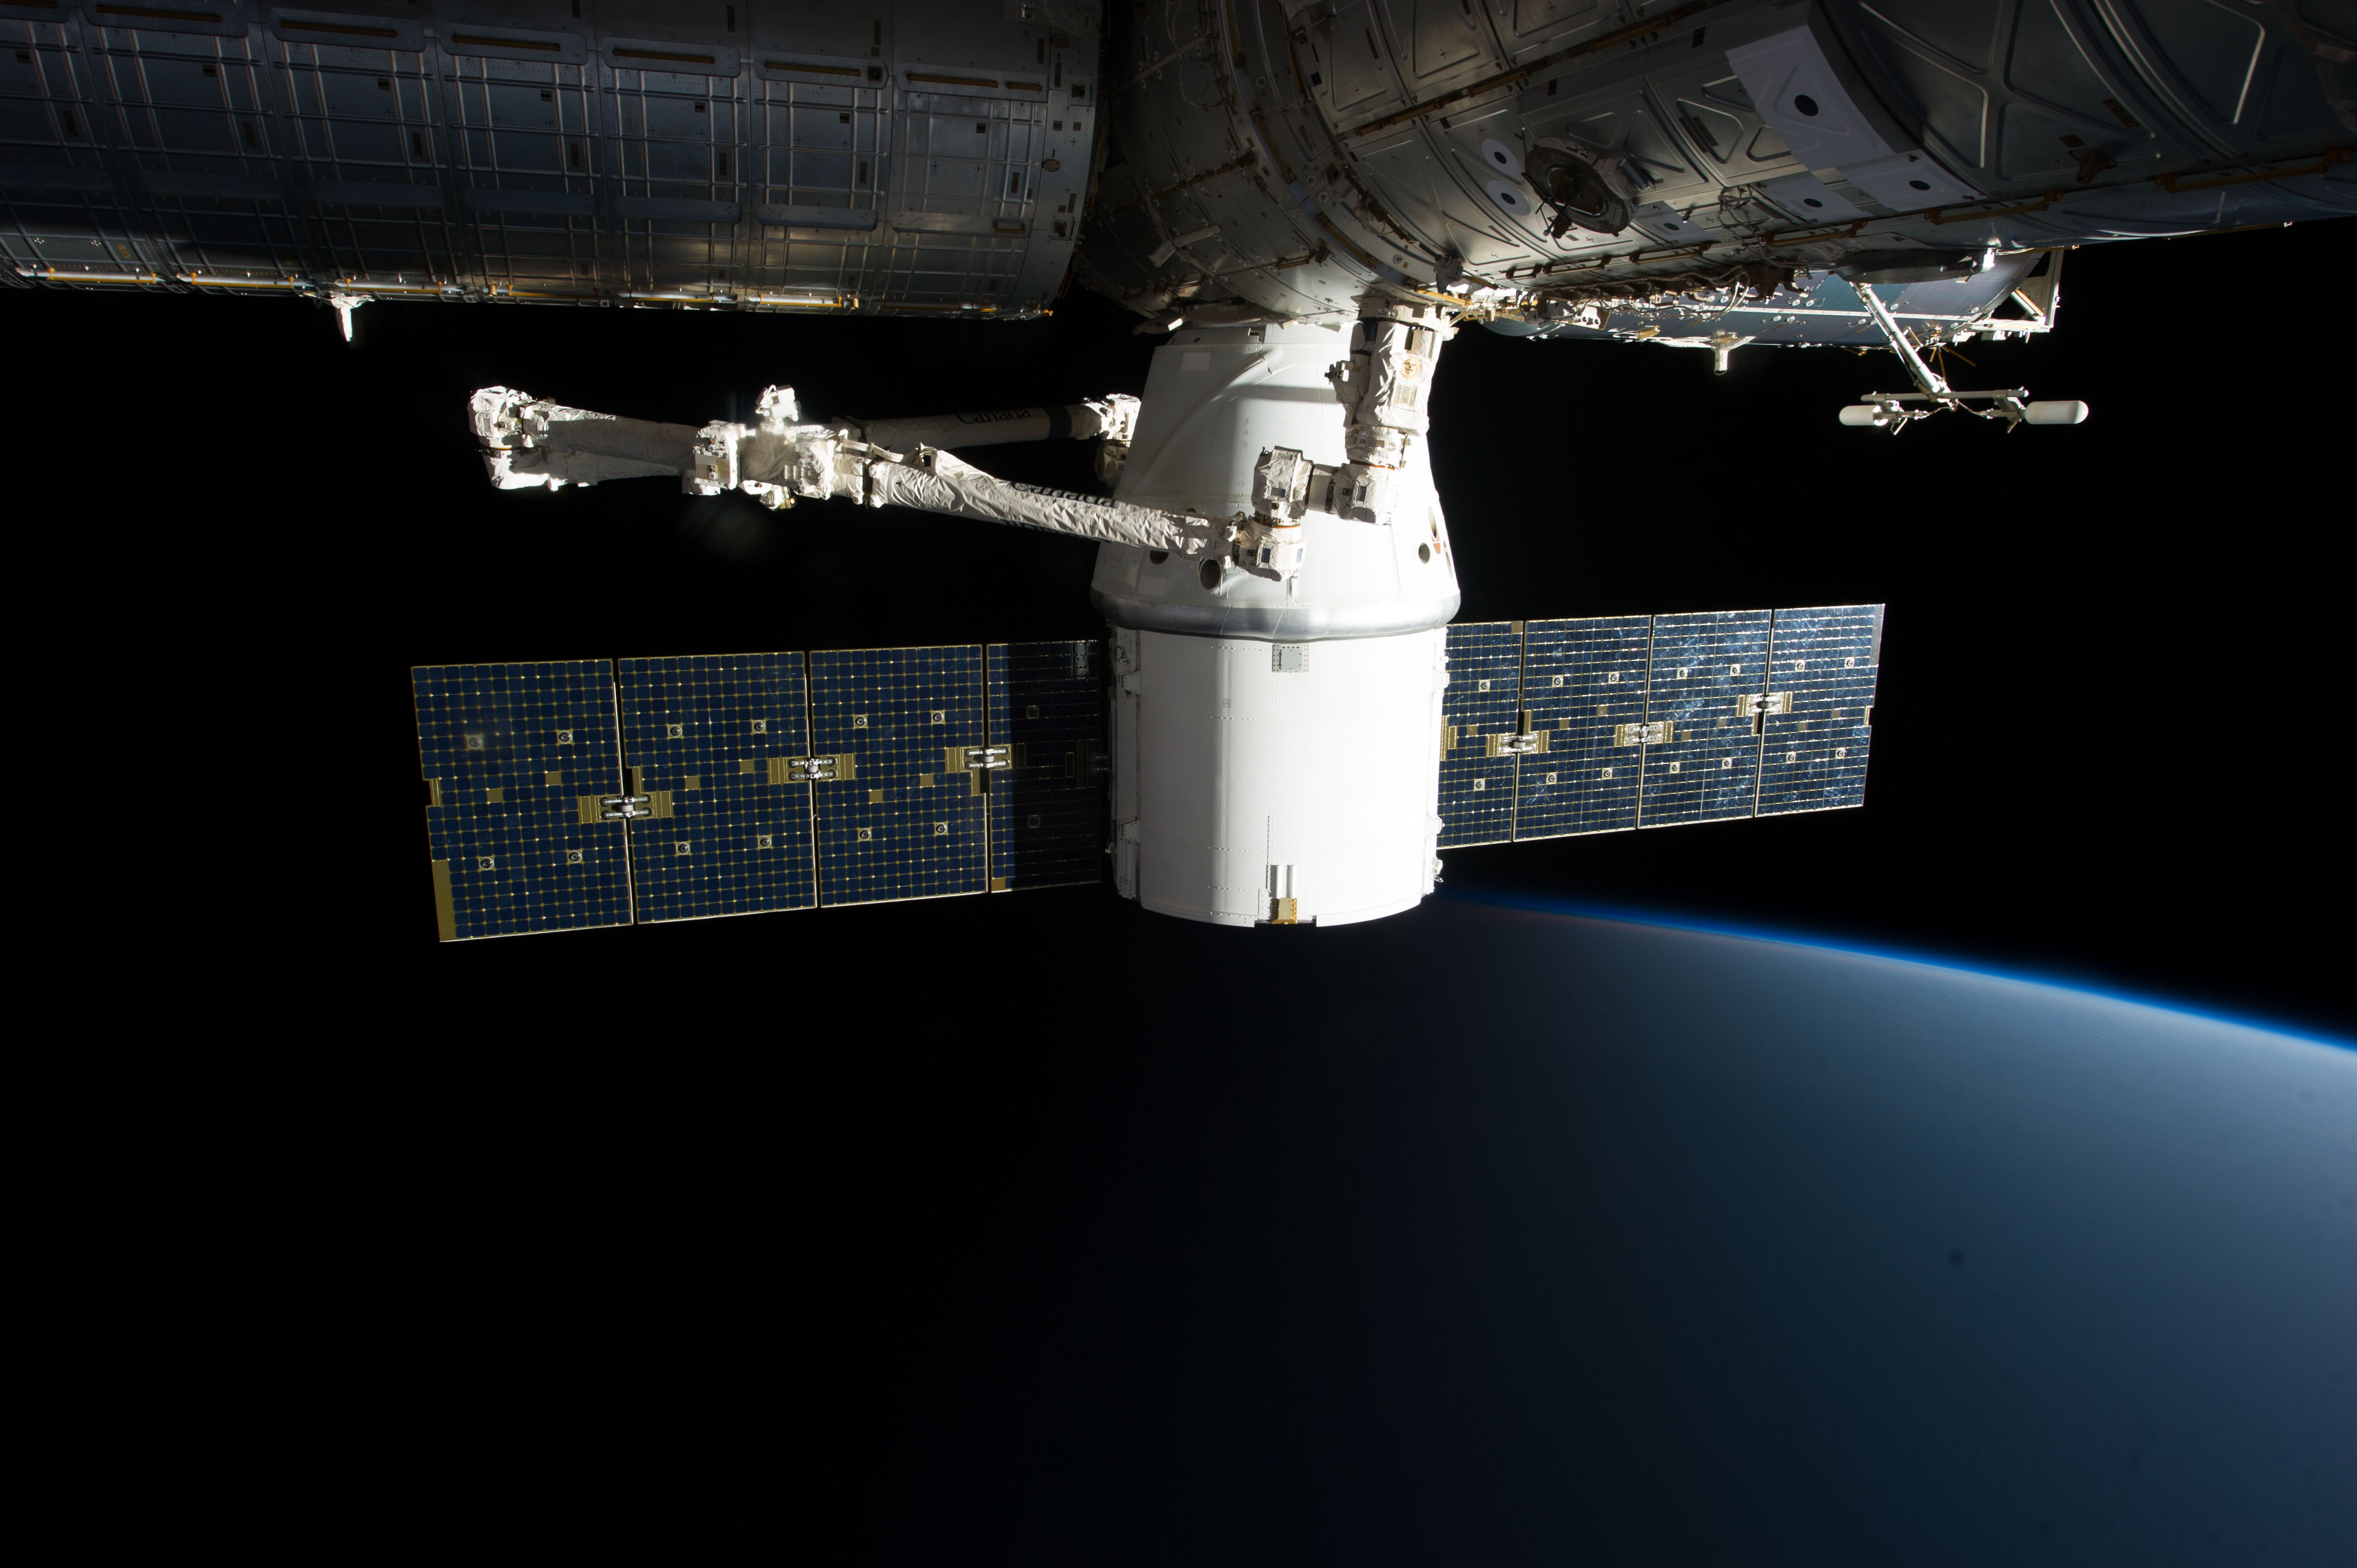 Expedition 34 and SpaceX